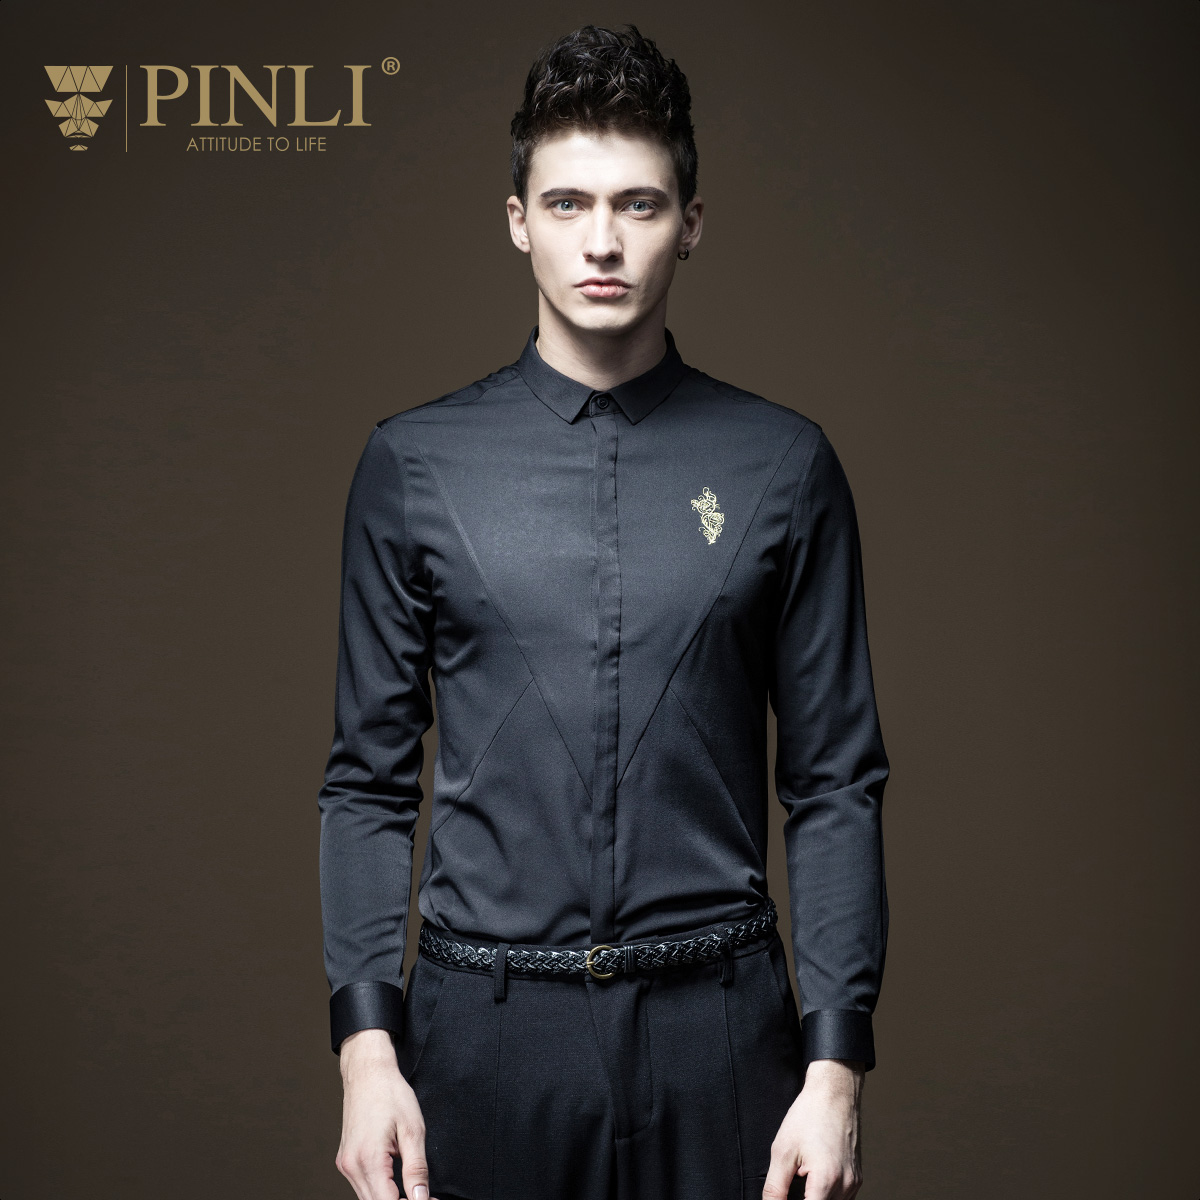 Camiseta Masculina Shirt Pinli Product Made Long Sleeve Embroidered Collar Cultivate Morality Men's Business Casual B173413210